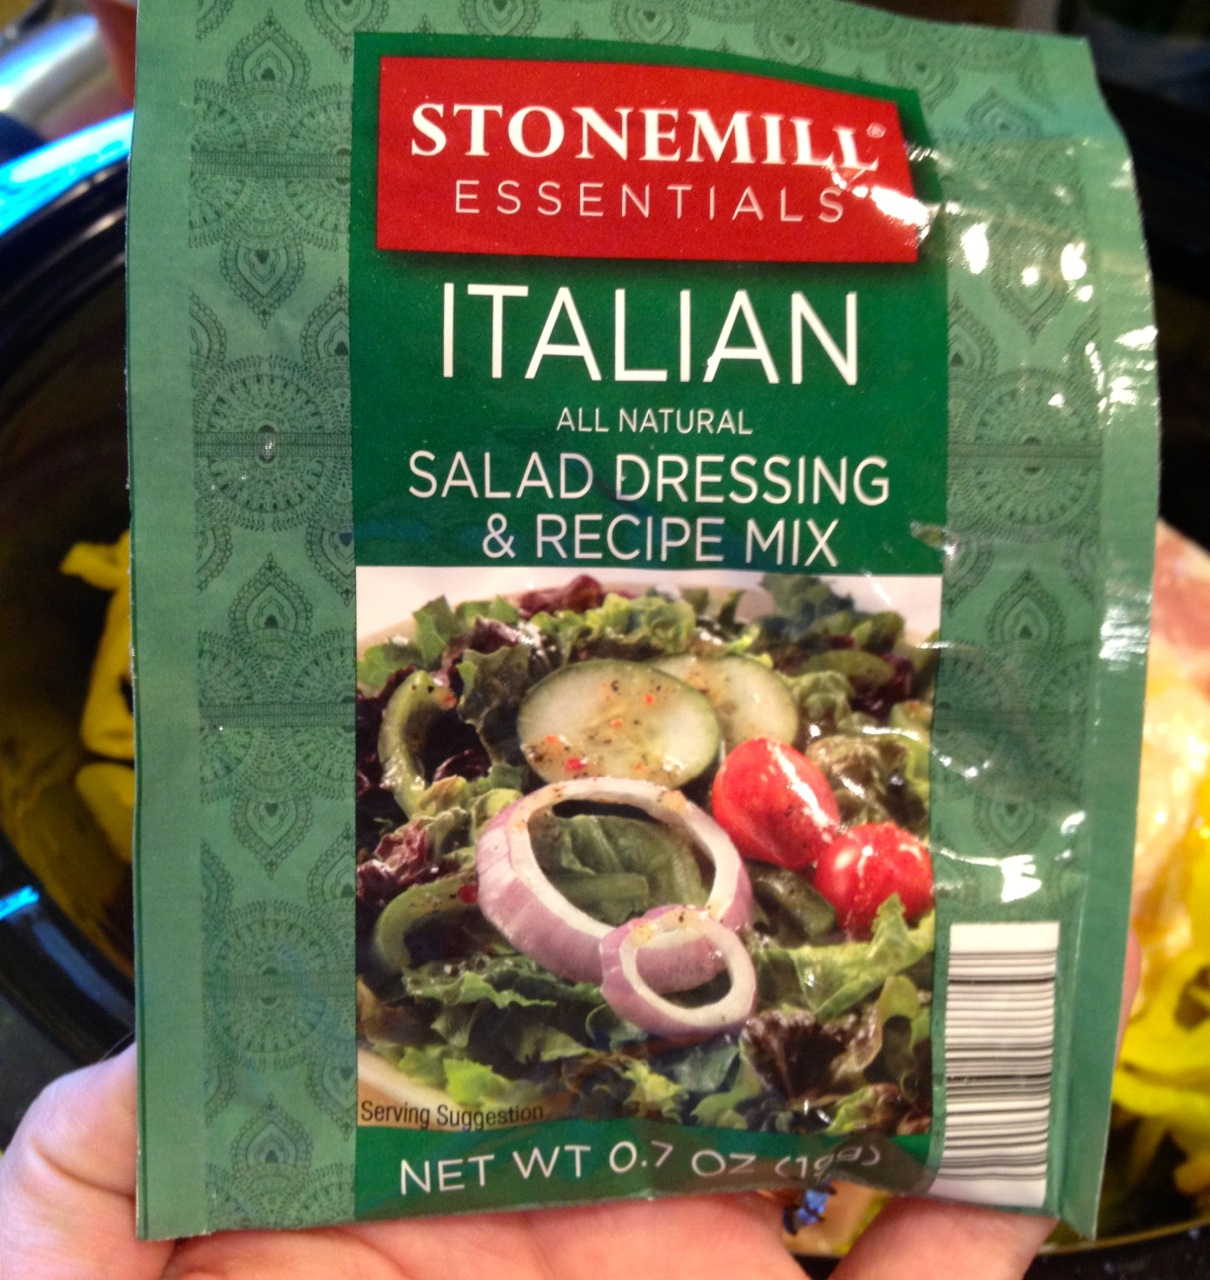 Italian Salad Dressing and Spice Mix